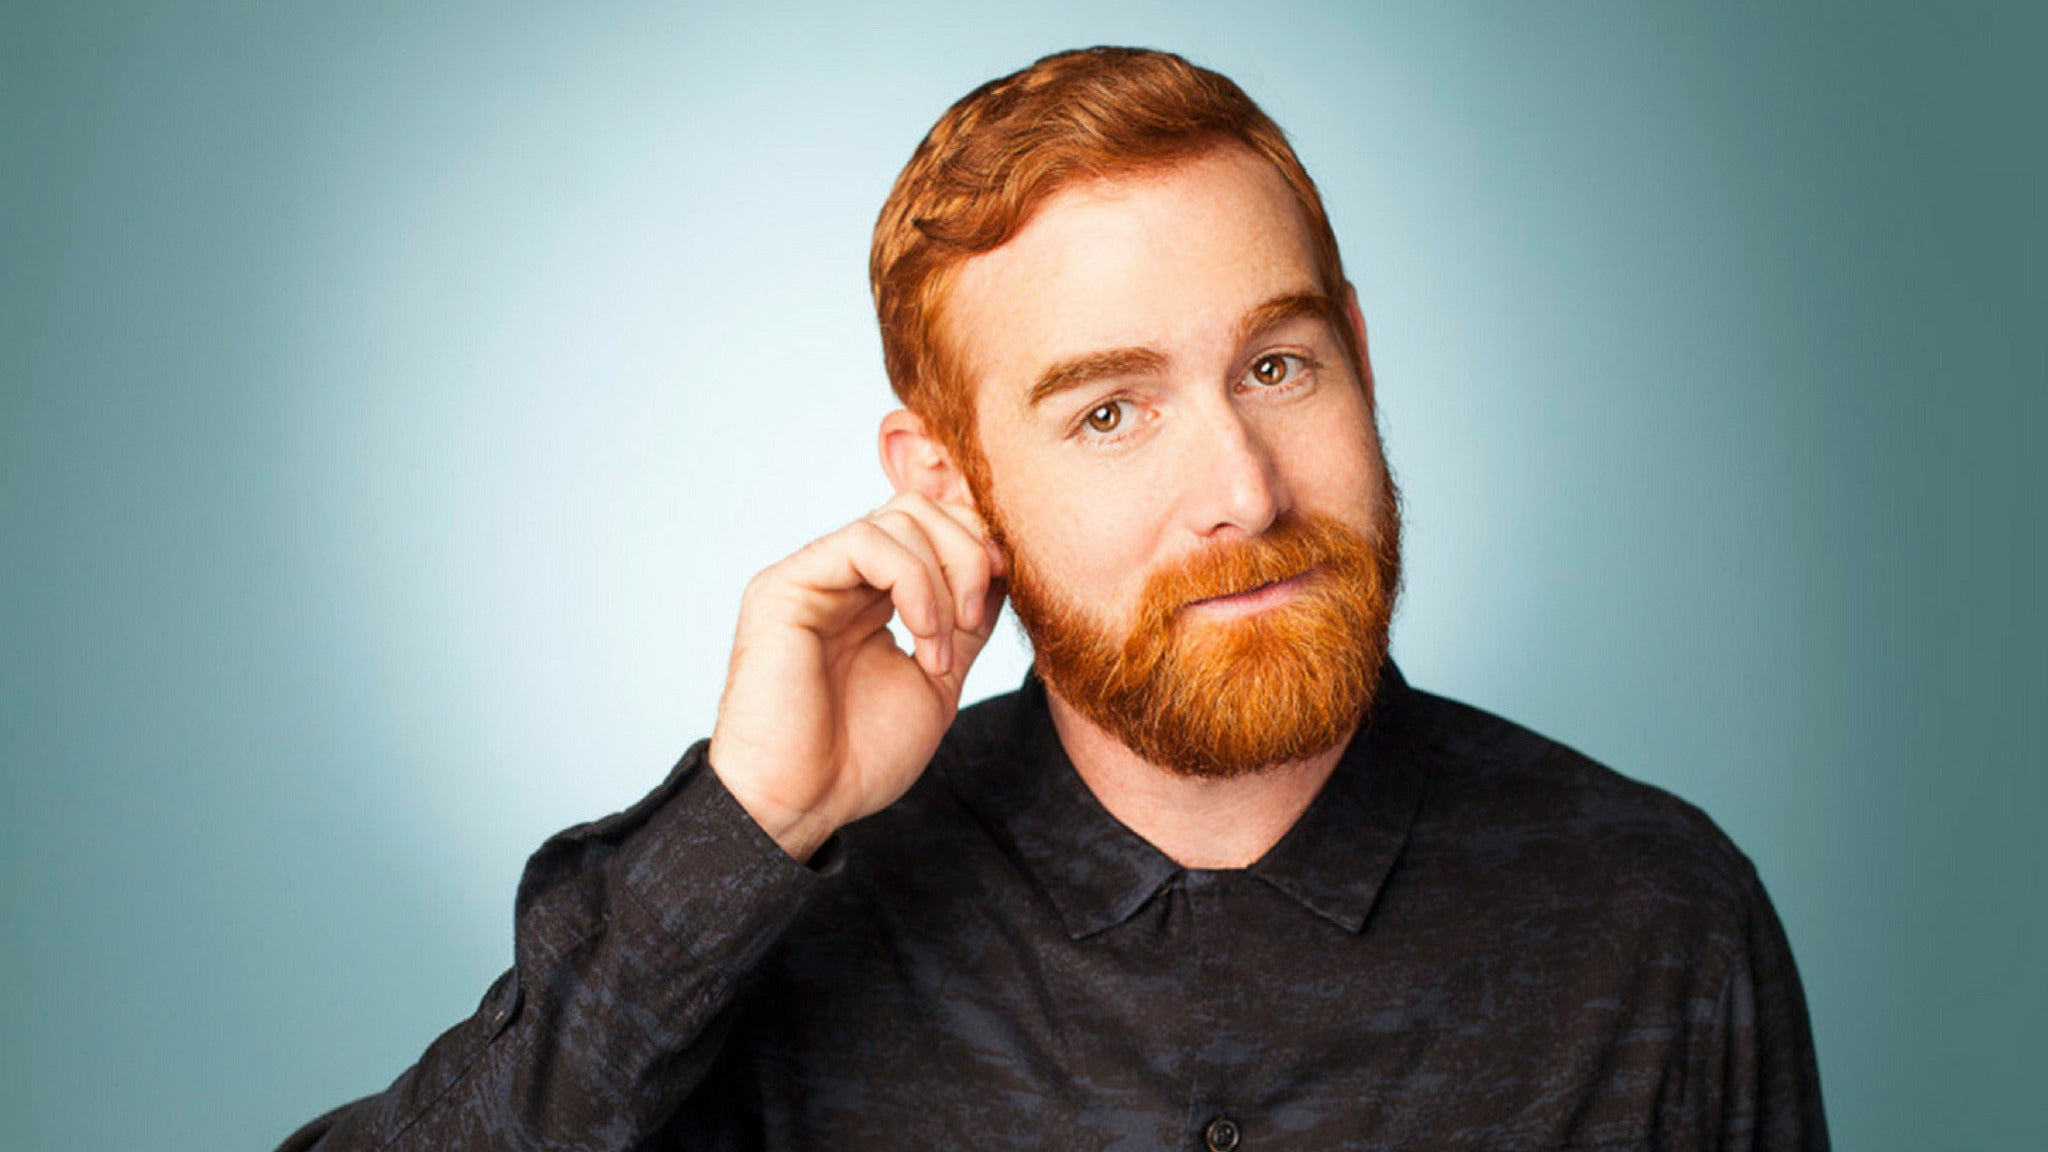 Heavvy Sets with Andrew Santino, Debra Digiovanni and More!